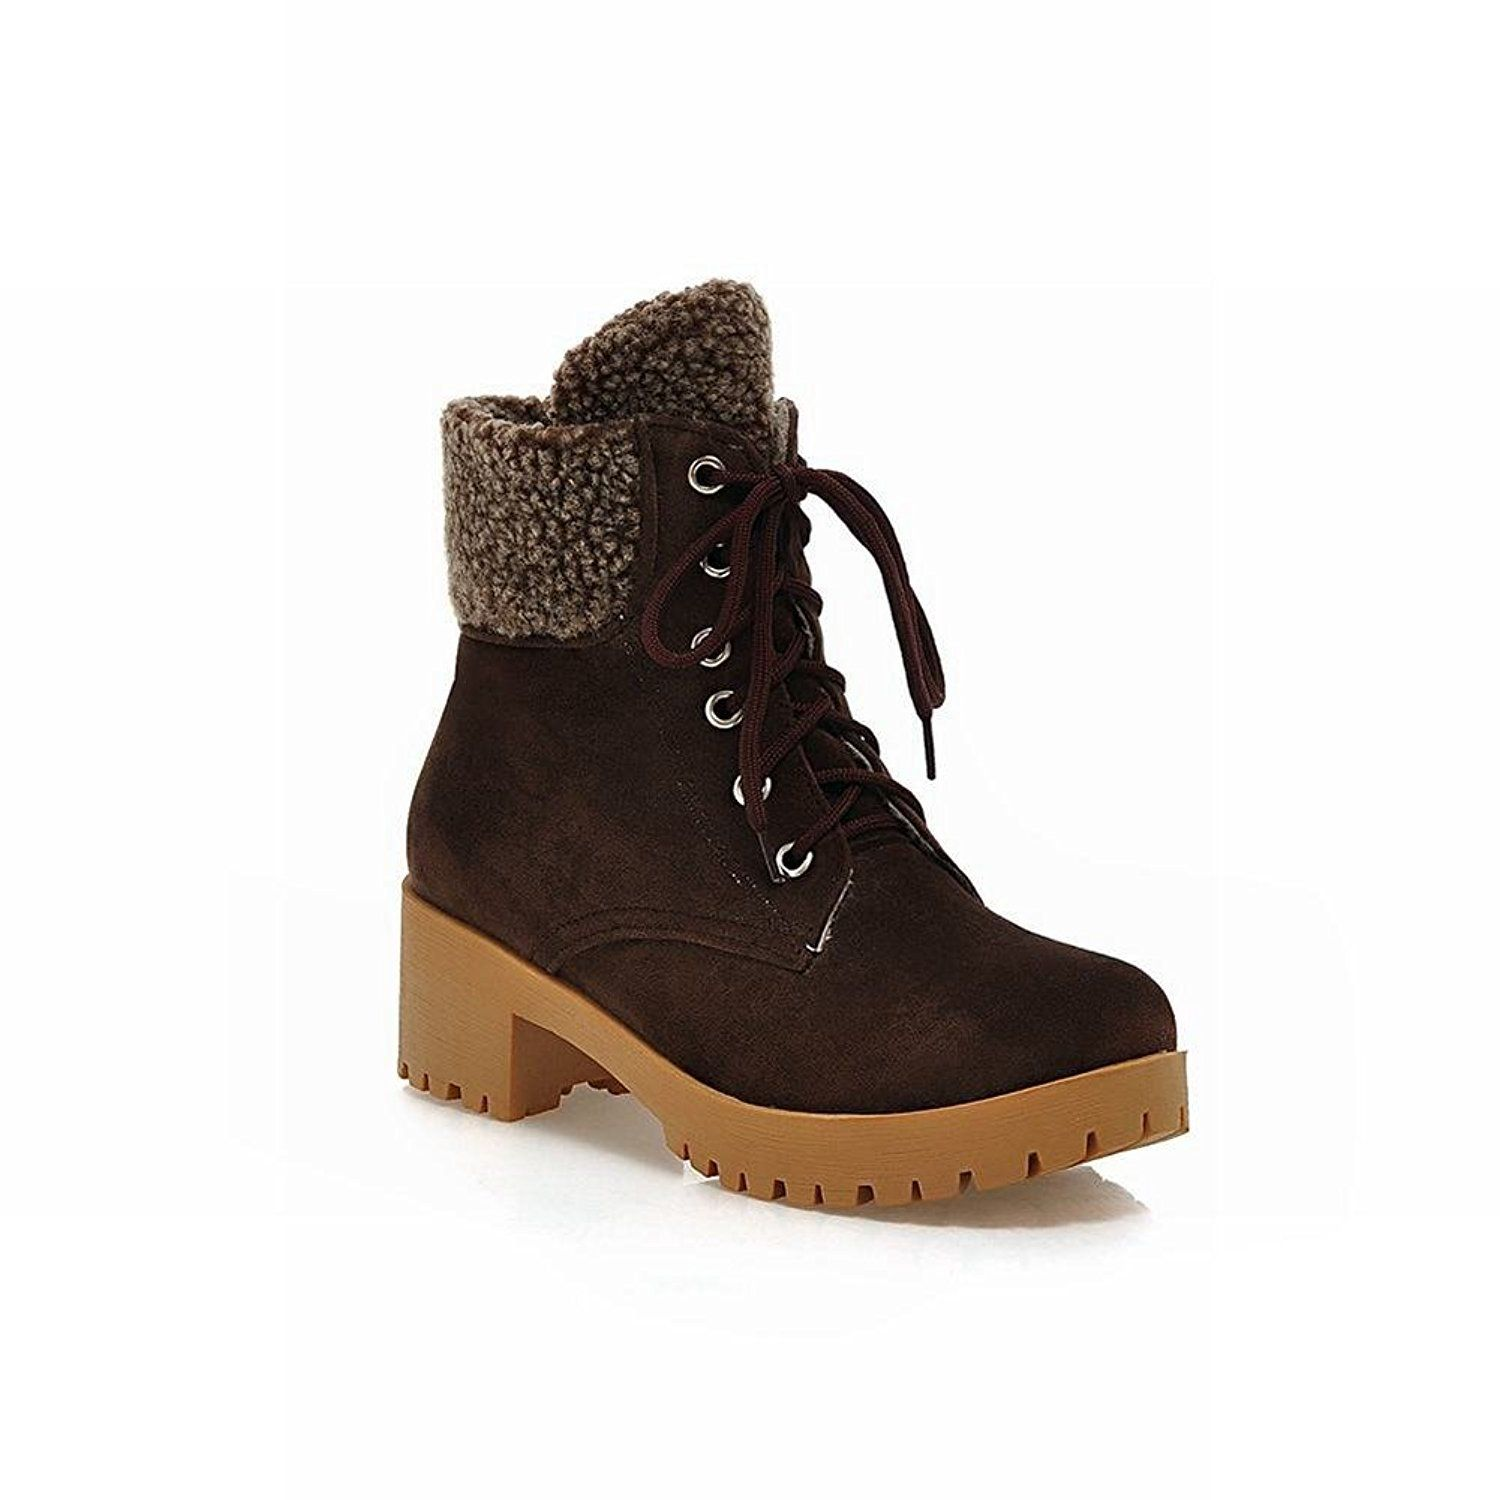 bd7e6f2abee Latasa Women's Fashion Ankle-high Low-heel Chunky Lace-up Snow Boots ...